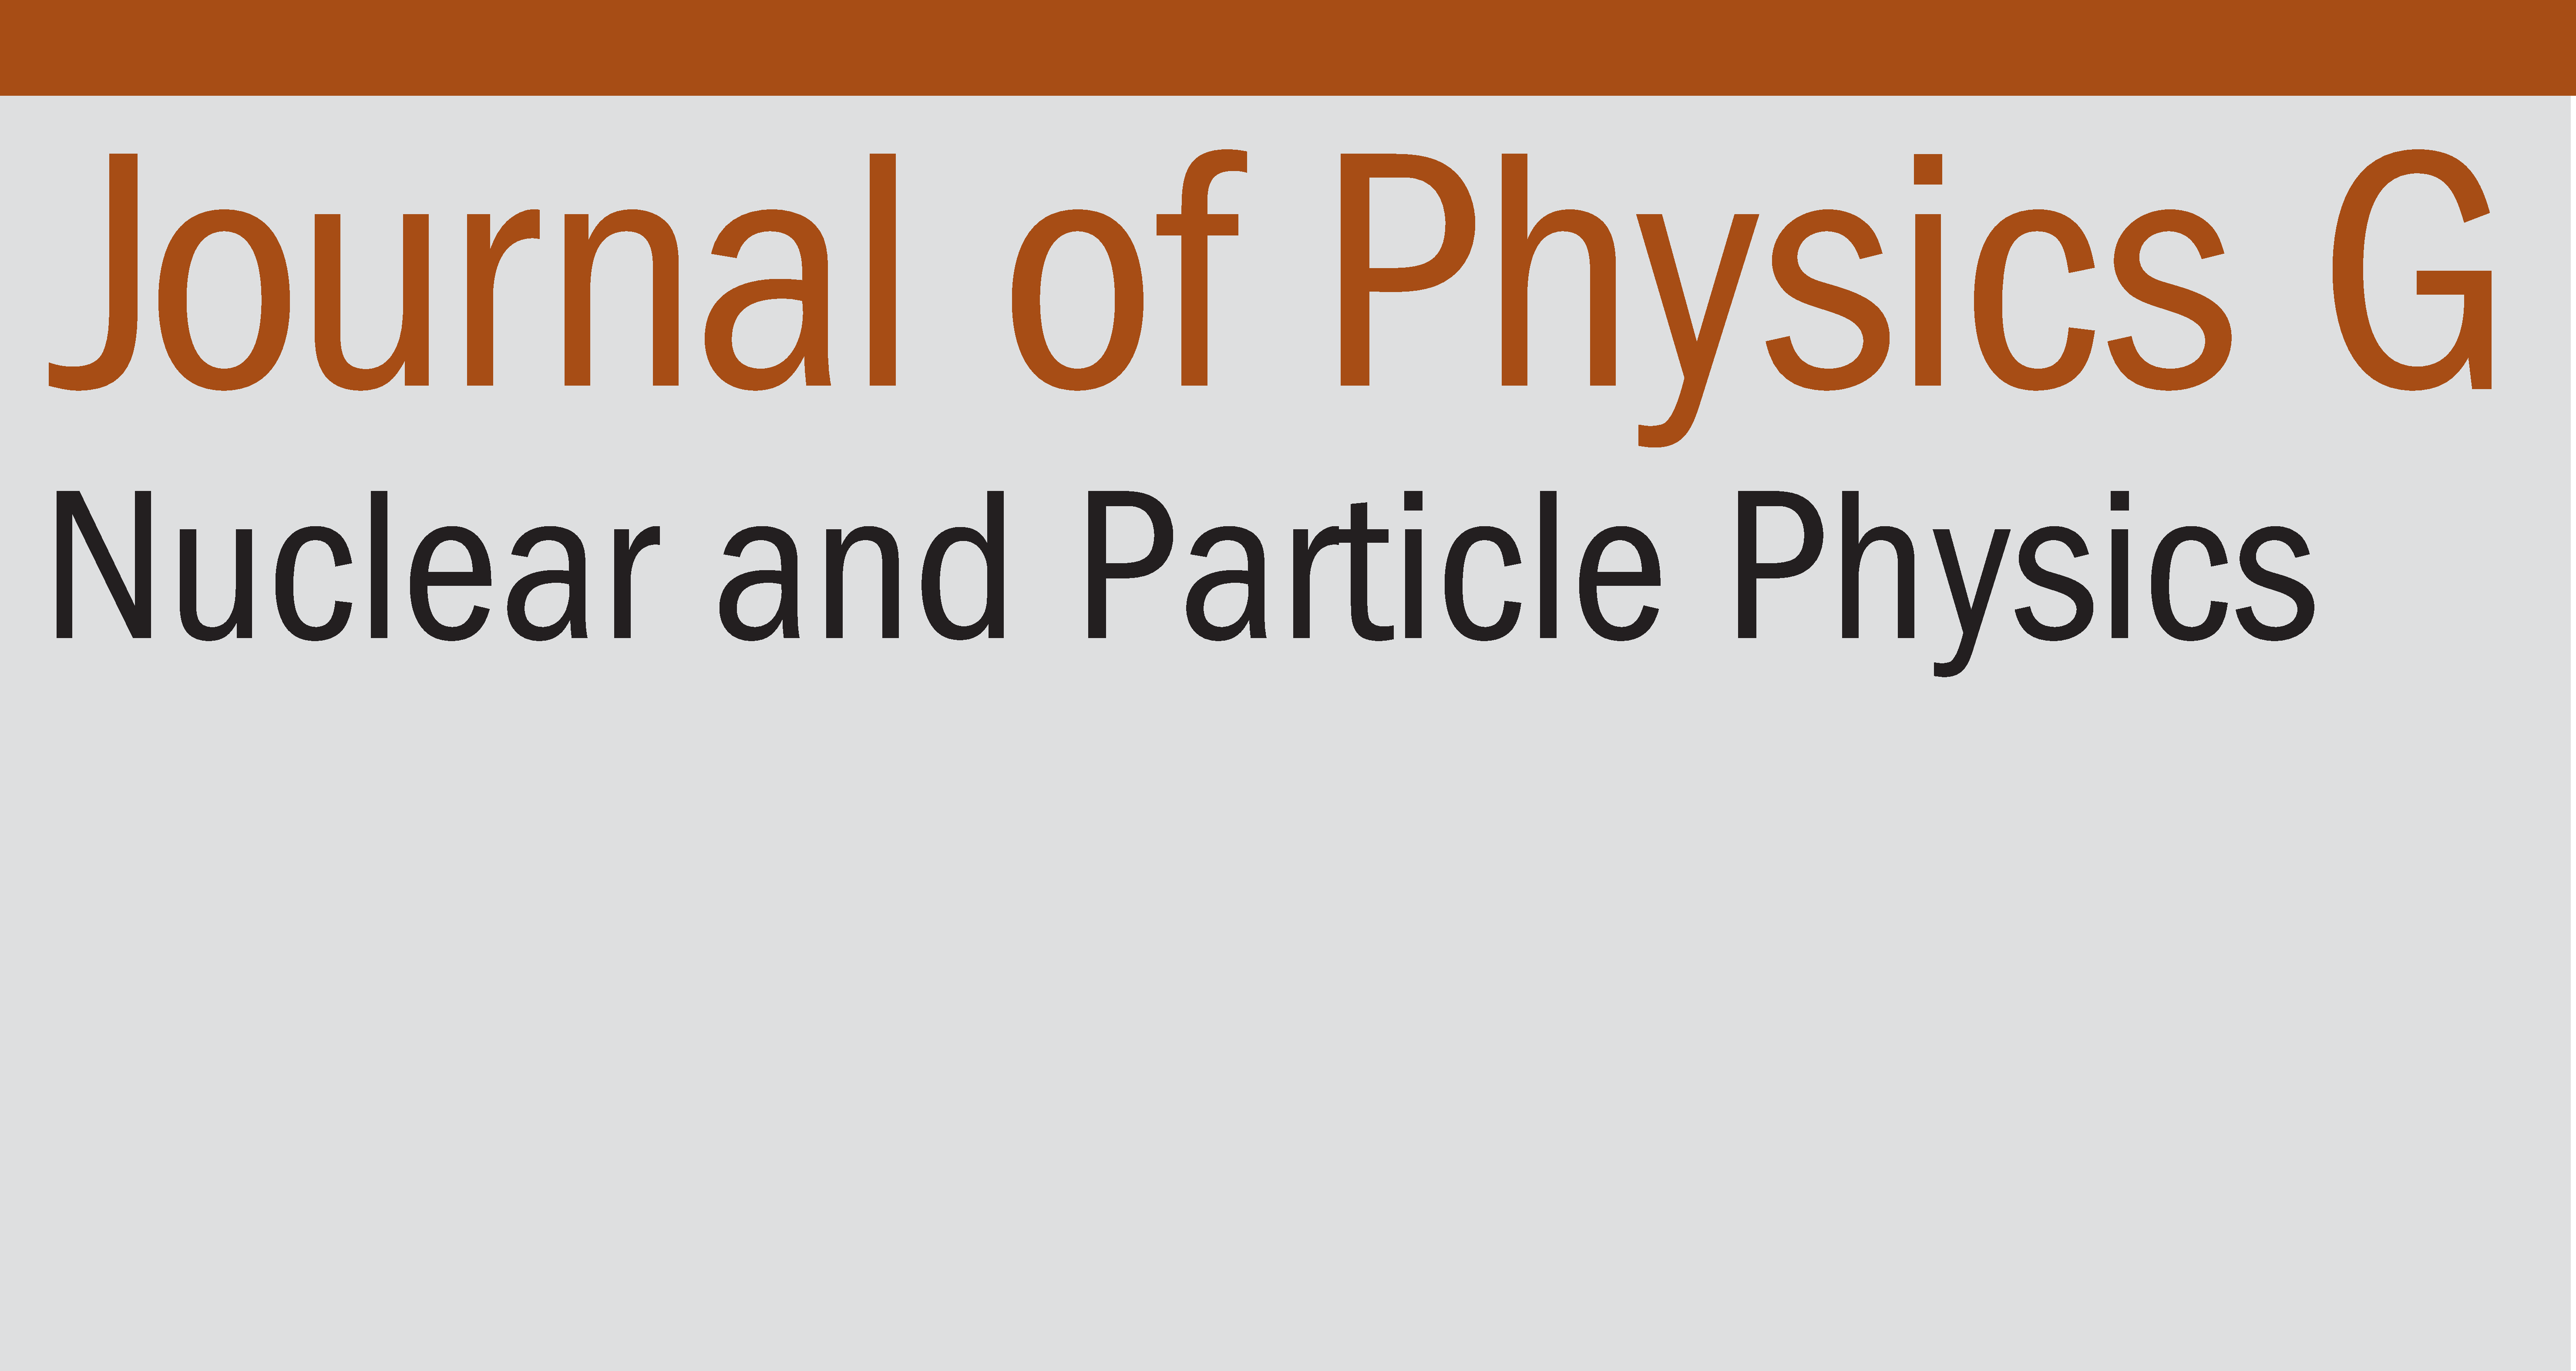 IOP Science - Journal of Physics G: Nuclear and Particle Physics